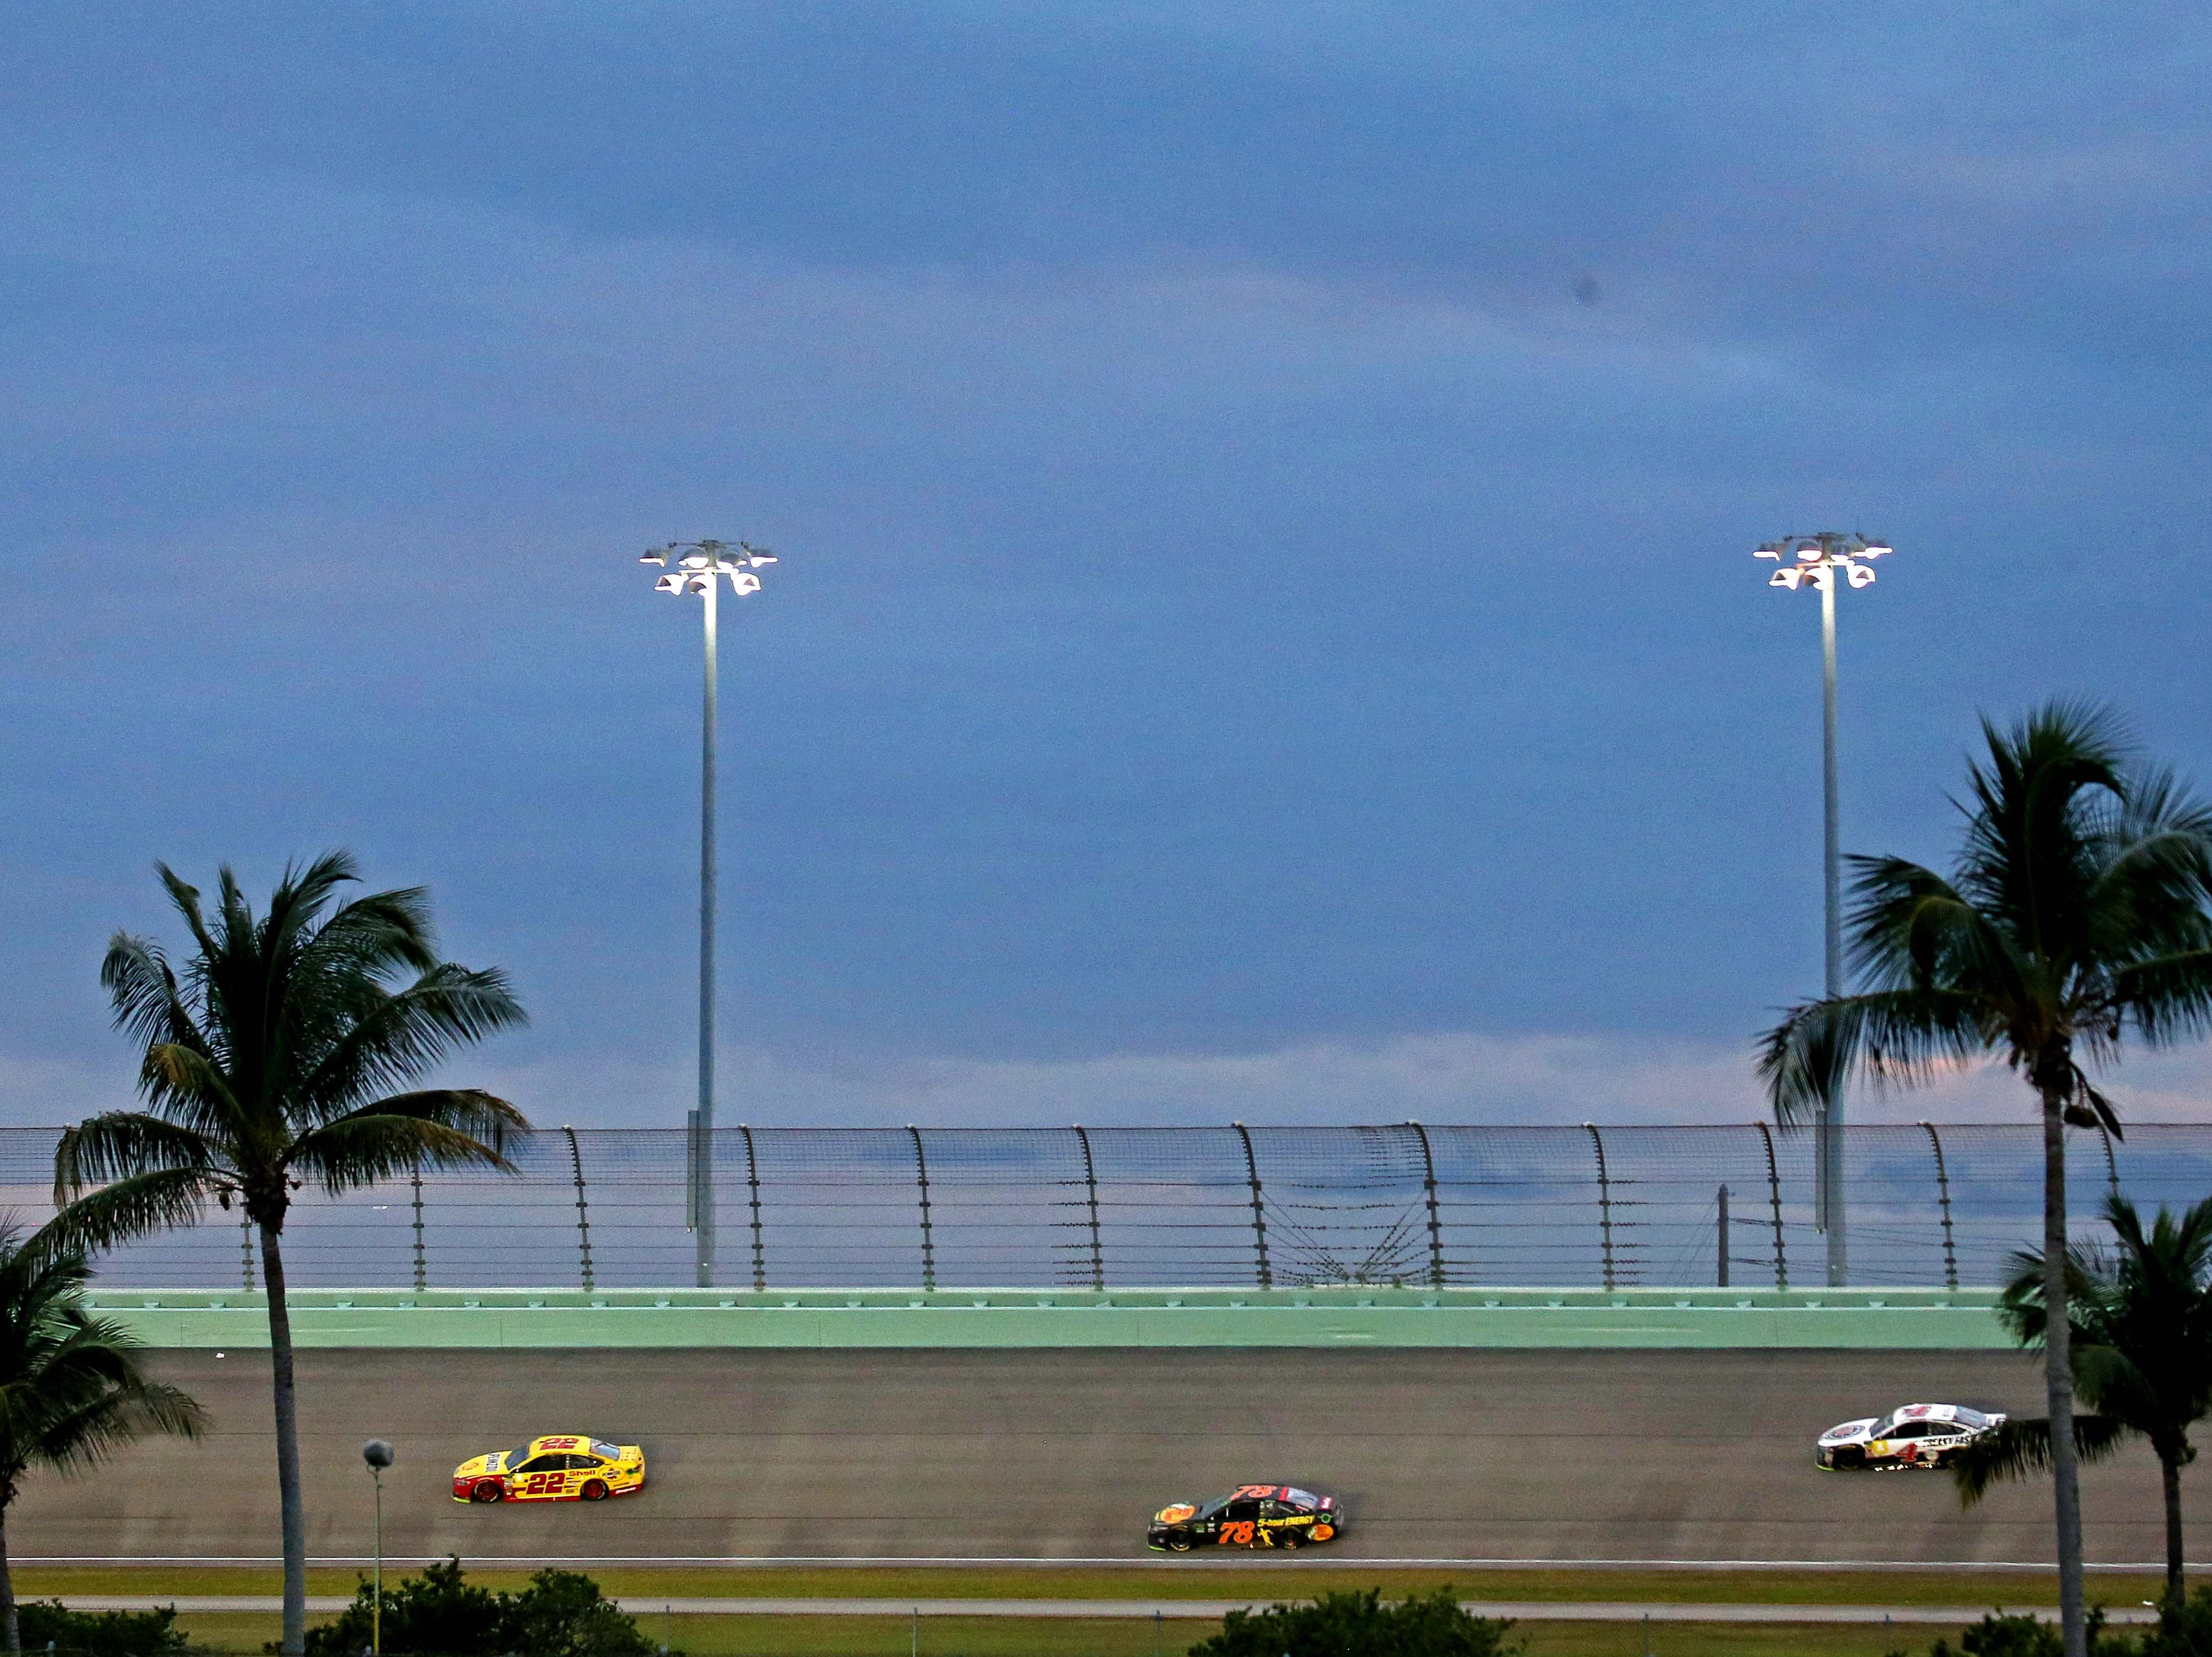 Championship contenders Joey Logano (22), Martin Truex Jr. (78) and Kevin Harvick run 1-2-3 during the Ford EcoBoost 400 at Homestead-Miami Speedway.